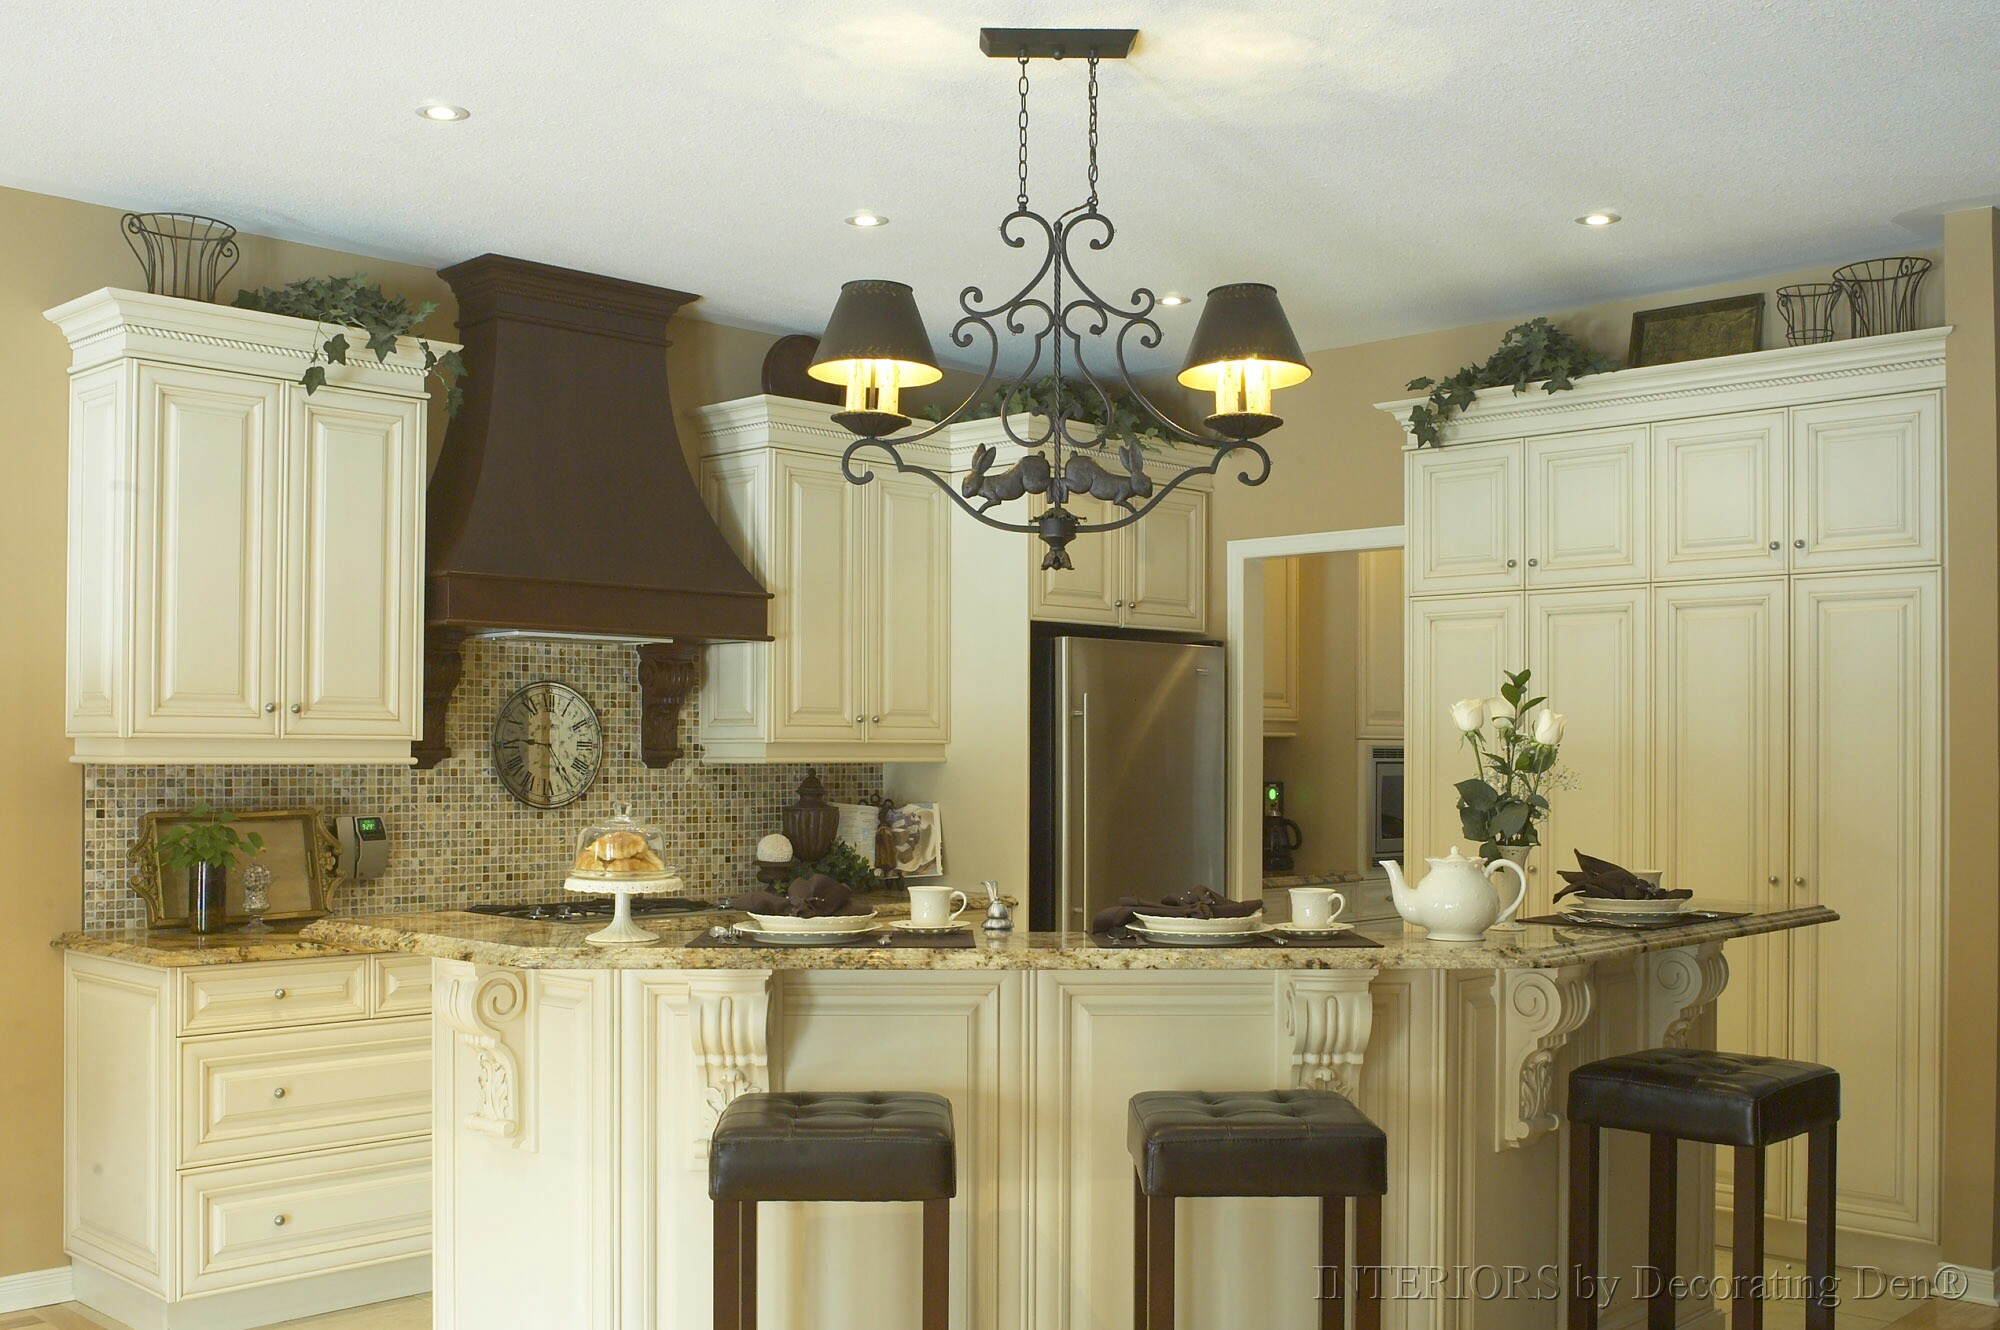 Important kitchen interior design components part 3 to for Kitchen hood designs ideas